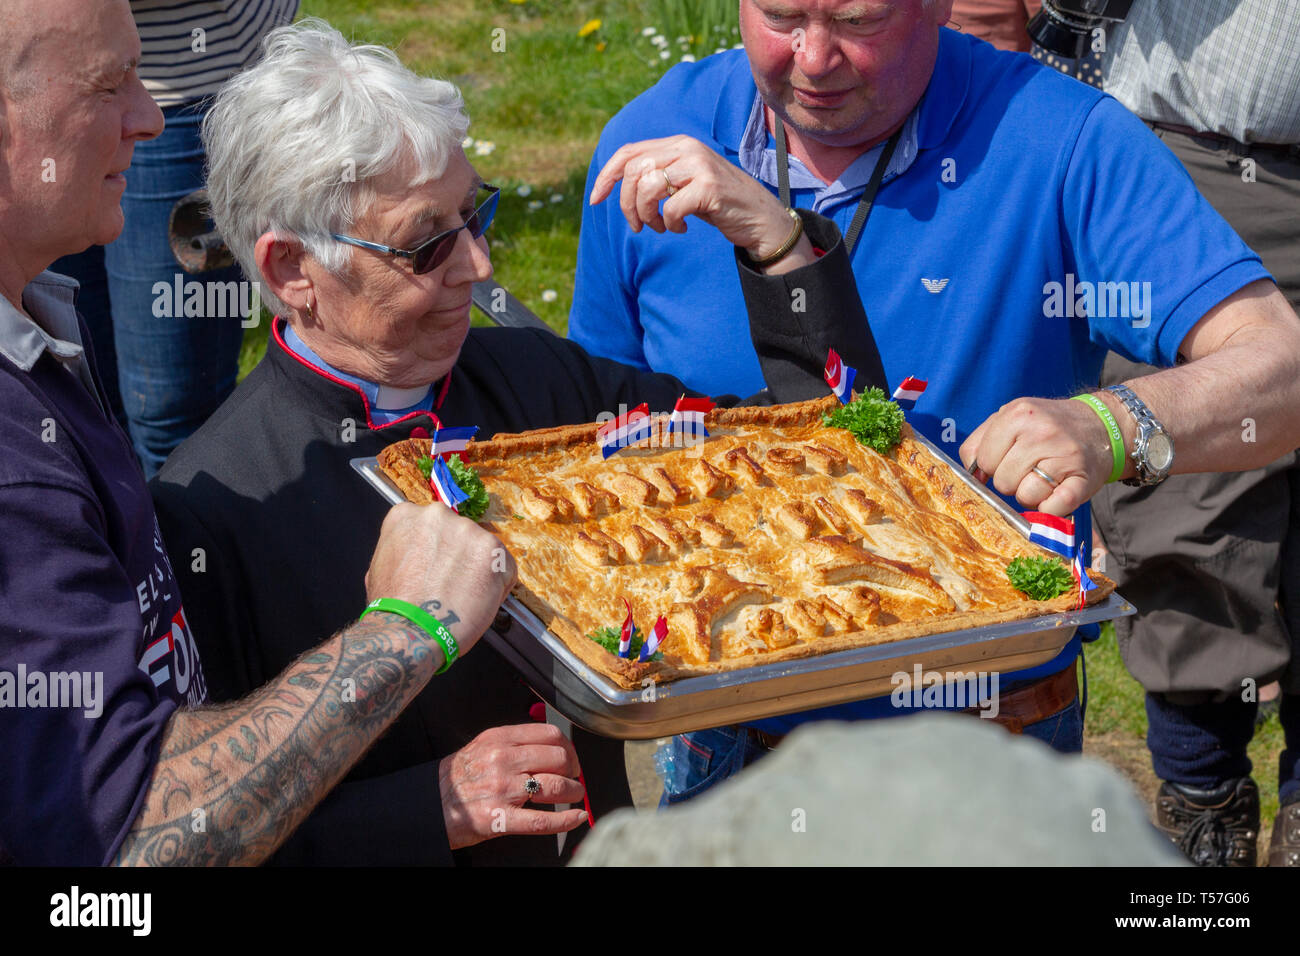 """Hallaton, Leicestershire. 22nd April 2019. Hare Pie Scramble & Bottle Kicking, this is an ancient custom in two distinct parts. The first is a procession, baskets of bread and the eponymous Hare Pie (believed to be minced beef these days), once at the church gate, the pie is blessed and distributed to the crowds and the second is a mass """"ballgame"""" played with small wooden casks called bottles between the villages of Hallaton and Melbourne. Credit: Keith J Smith./Alamy Live News Stock Photo"""